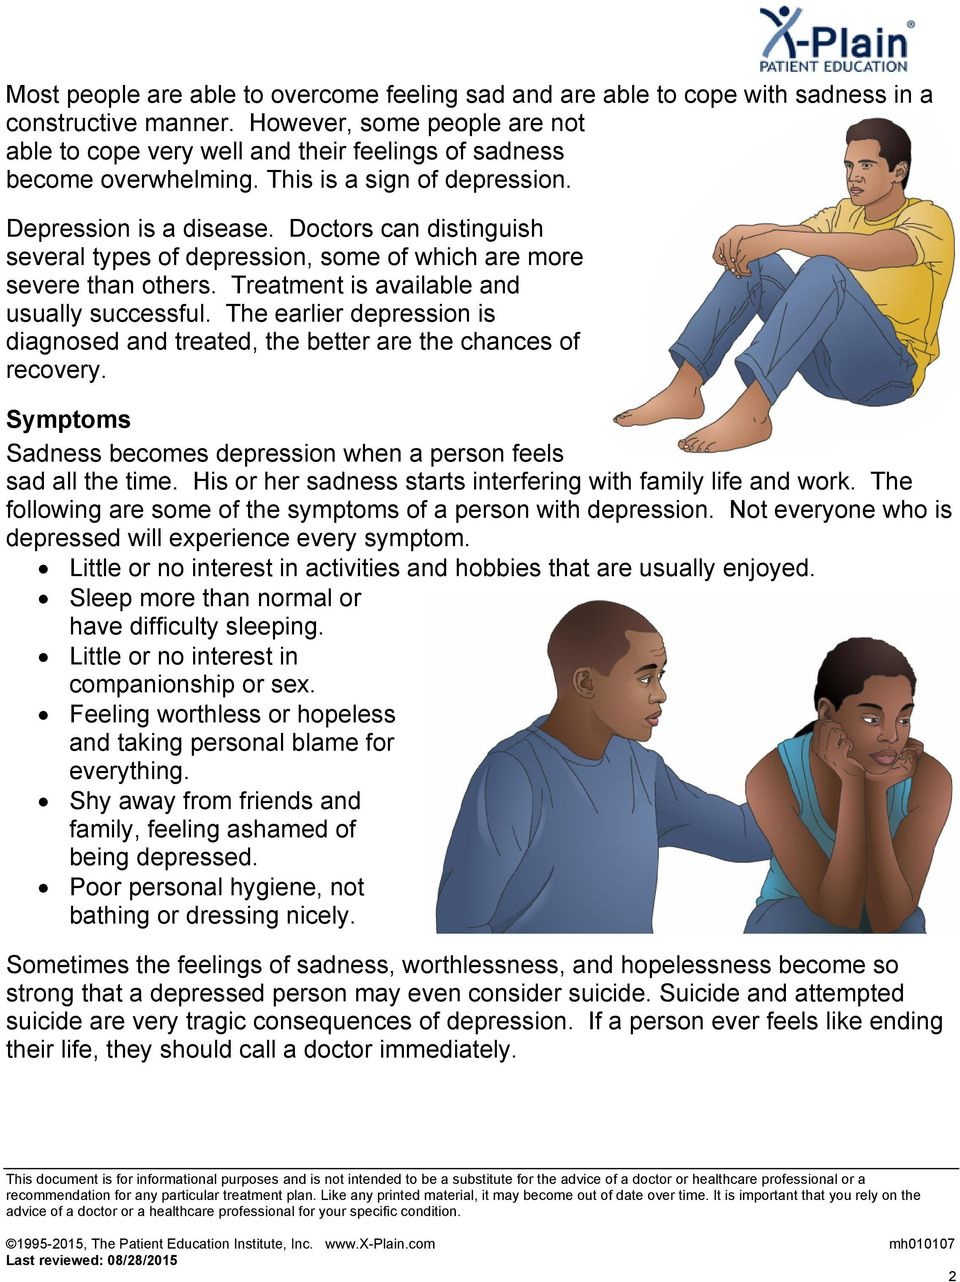 Doctors can distinguish several types of depression, some of which are more severe than others. Treatment is available and usually successful.